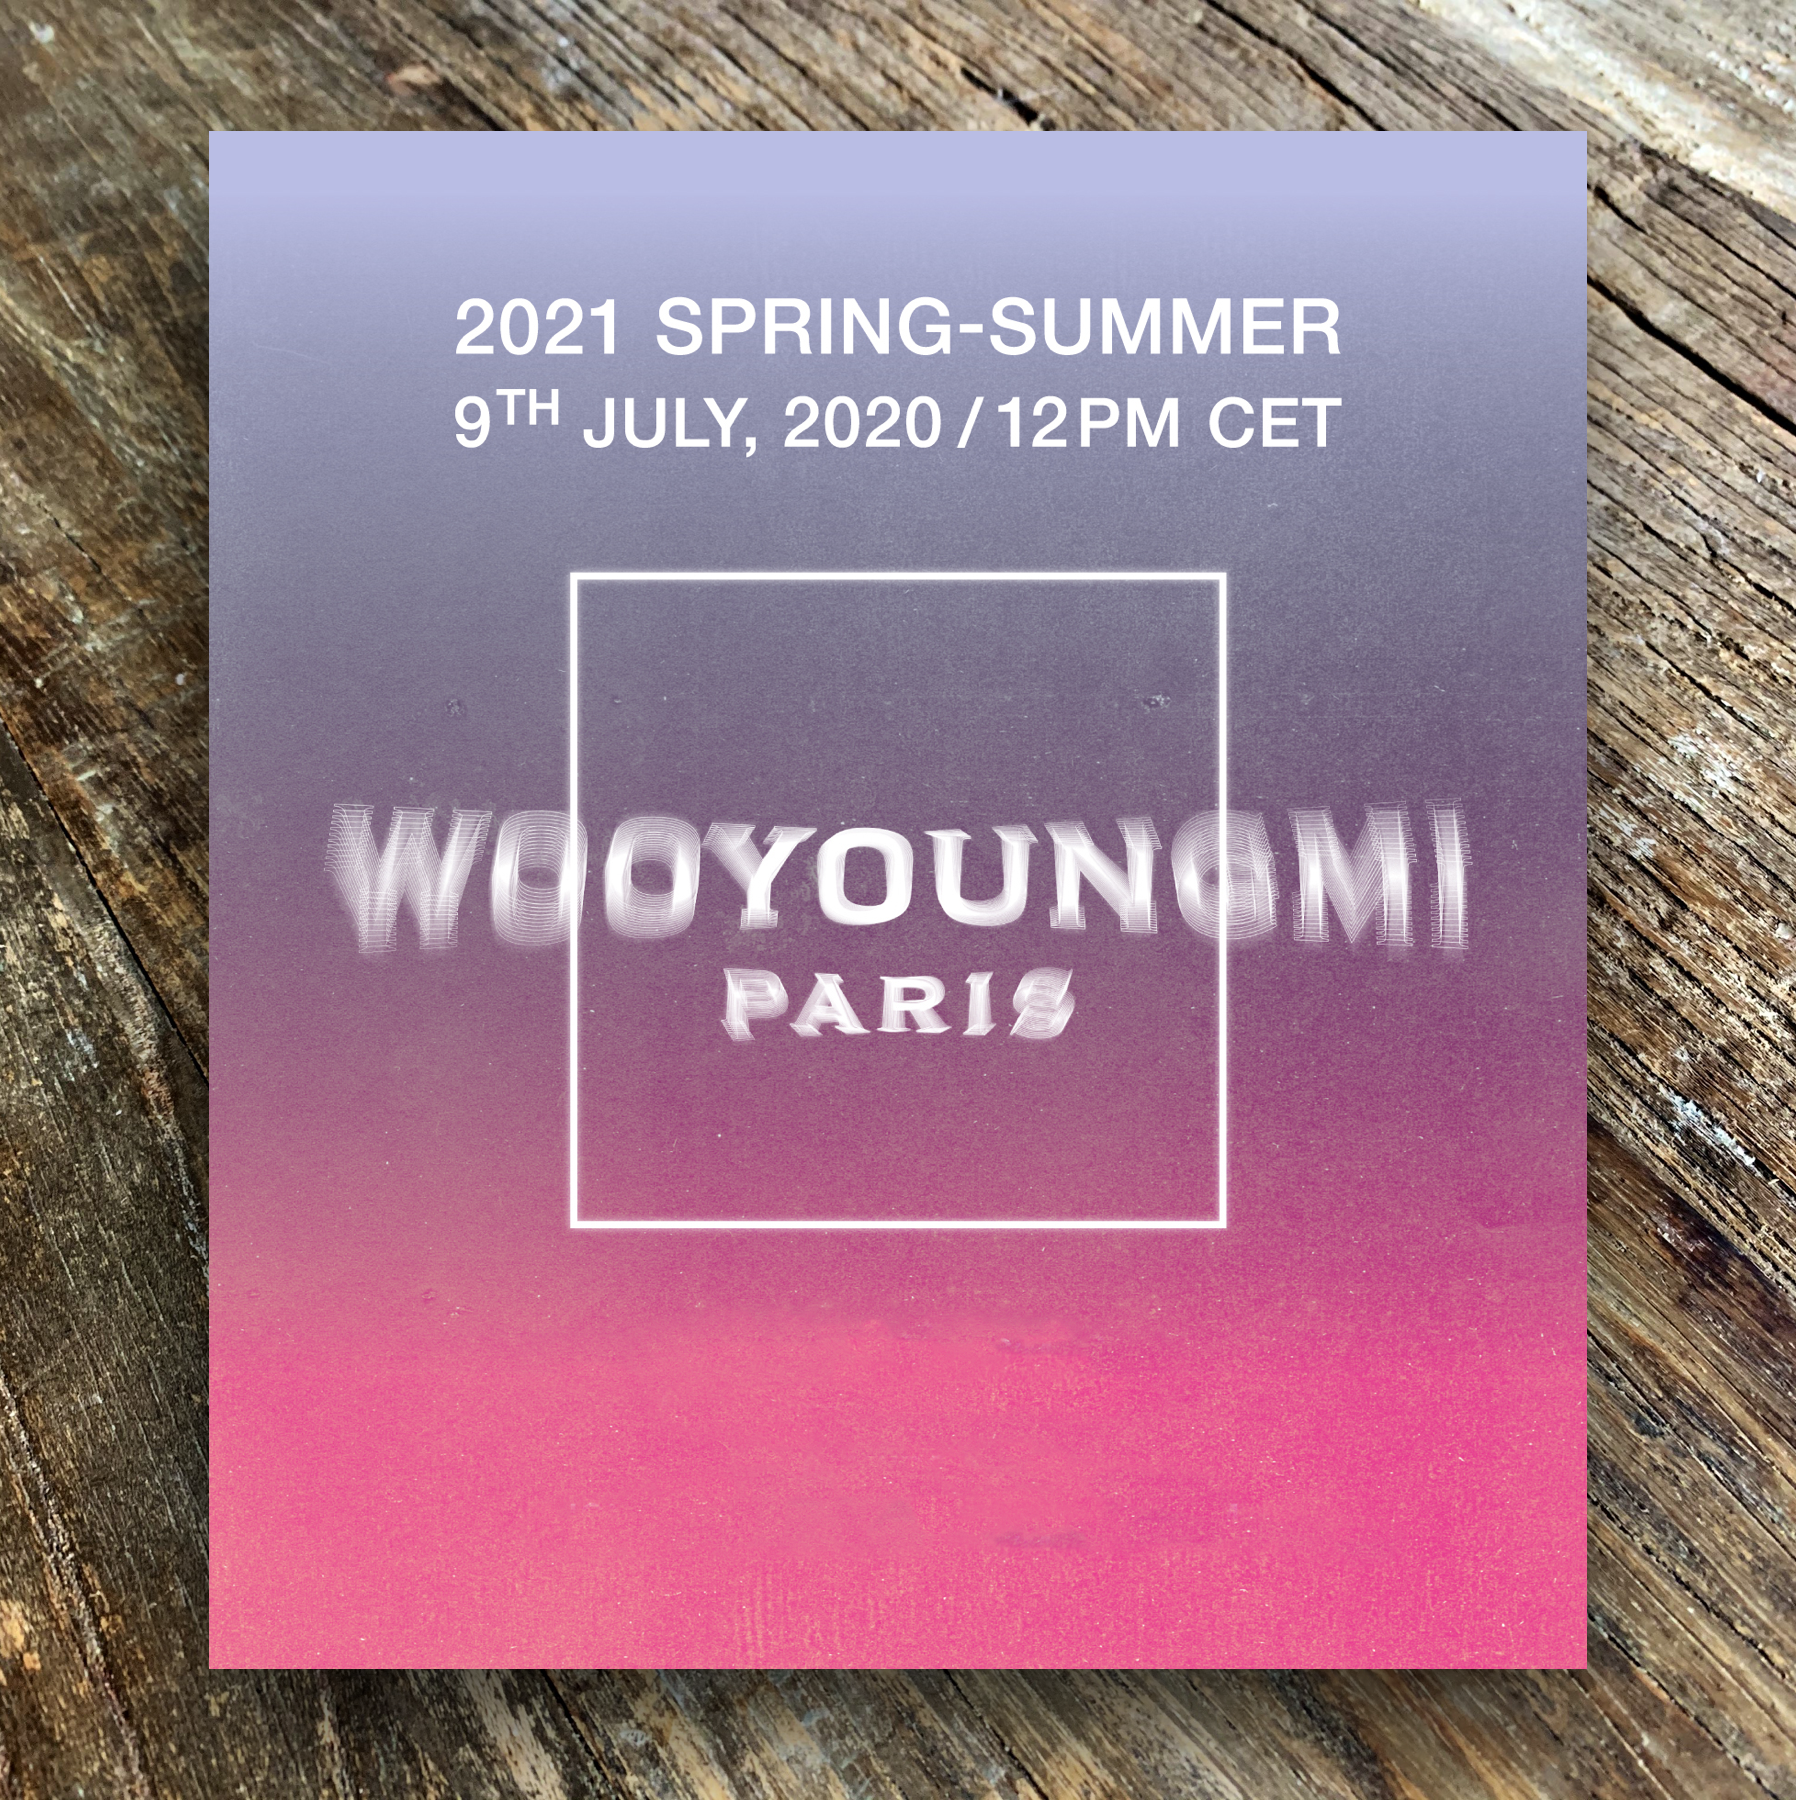 Men's Fashion Show Invitations Photos from Spring 2021